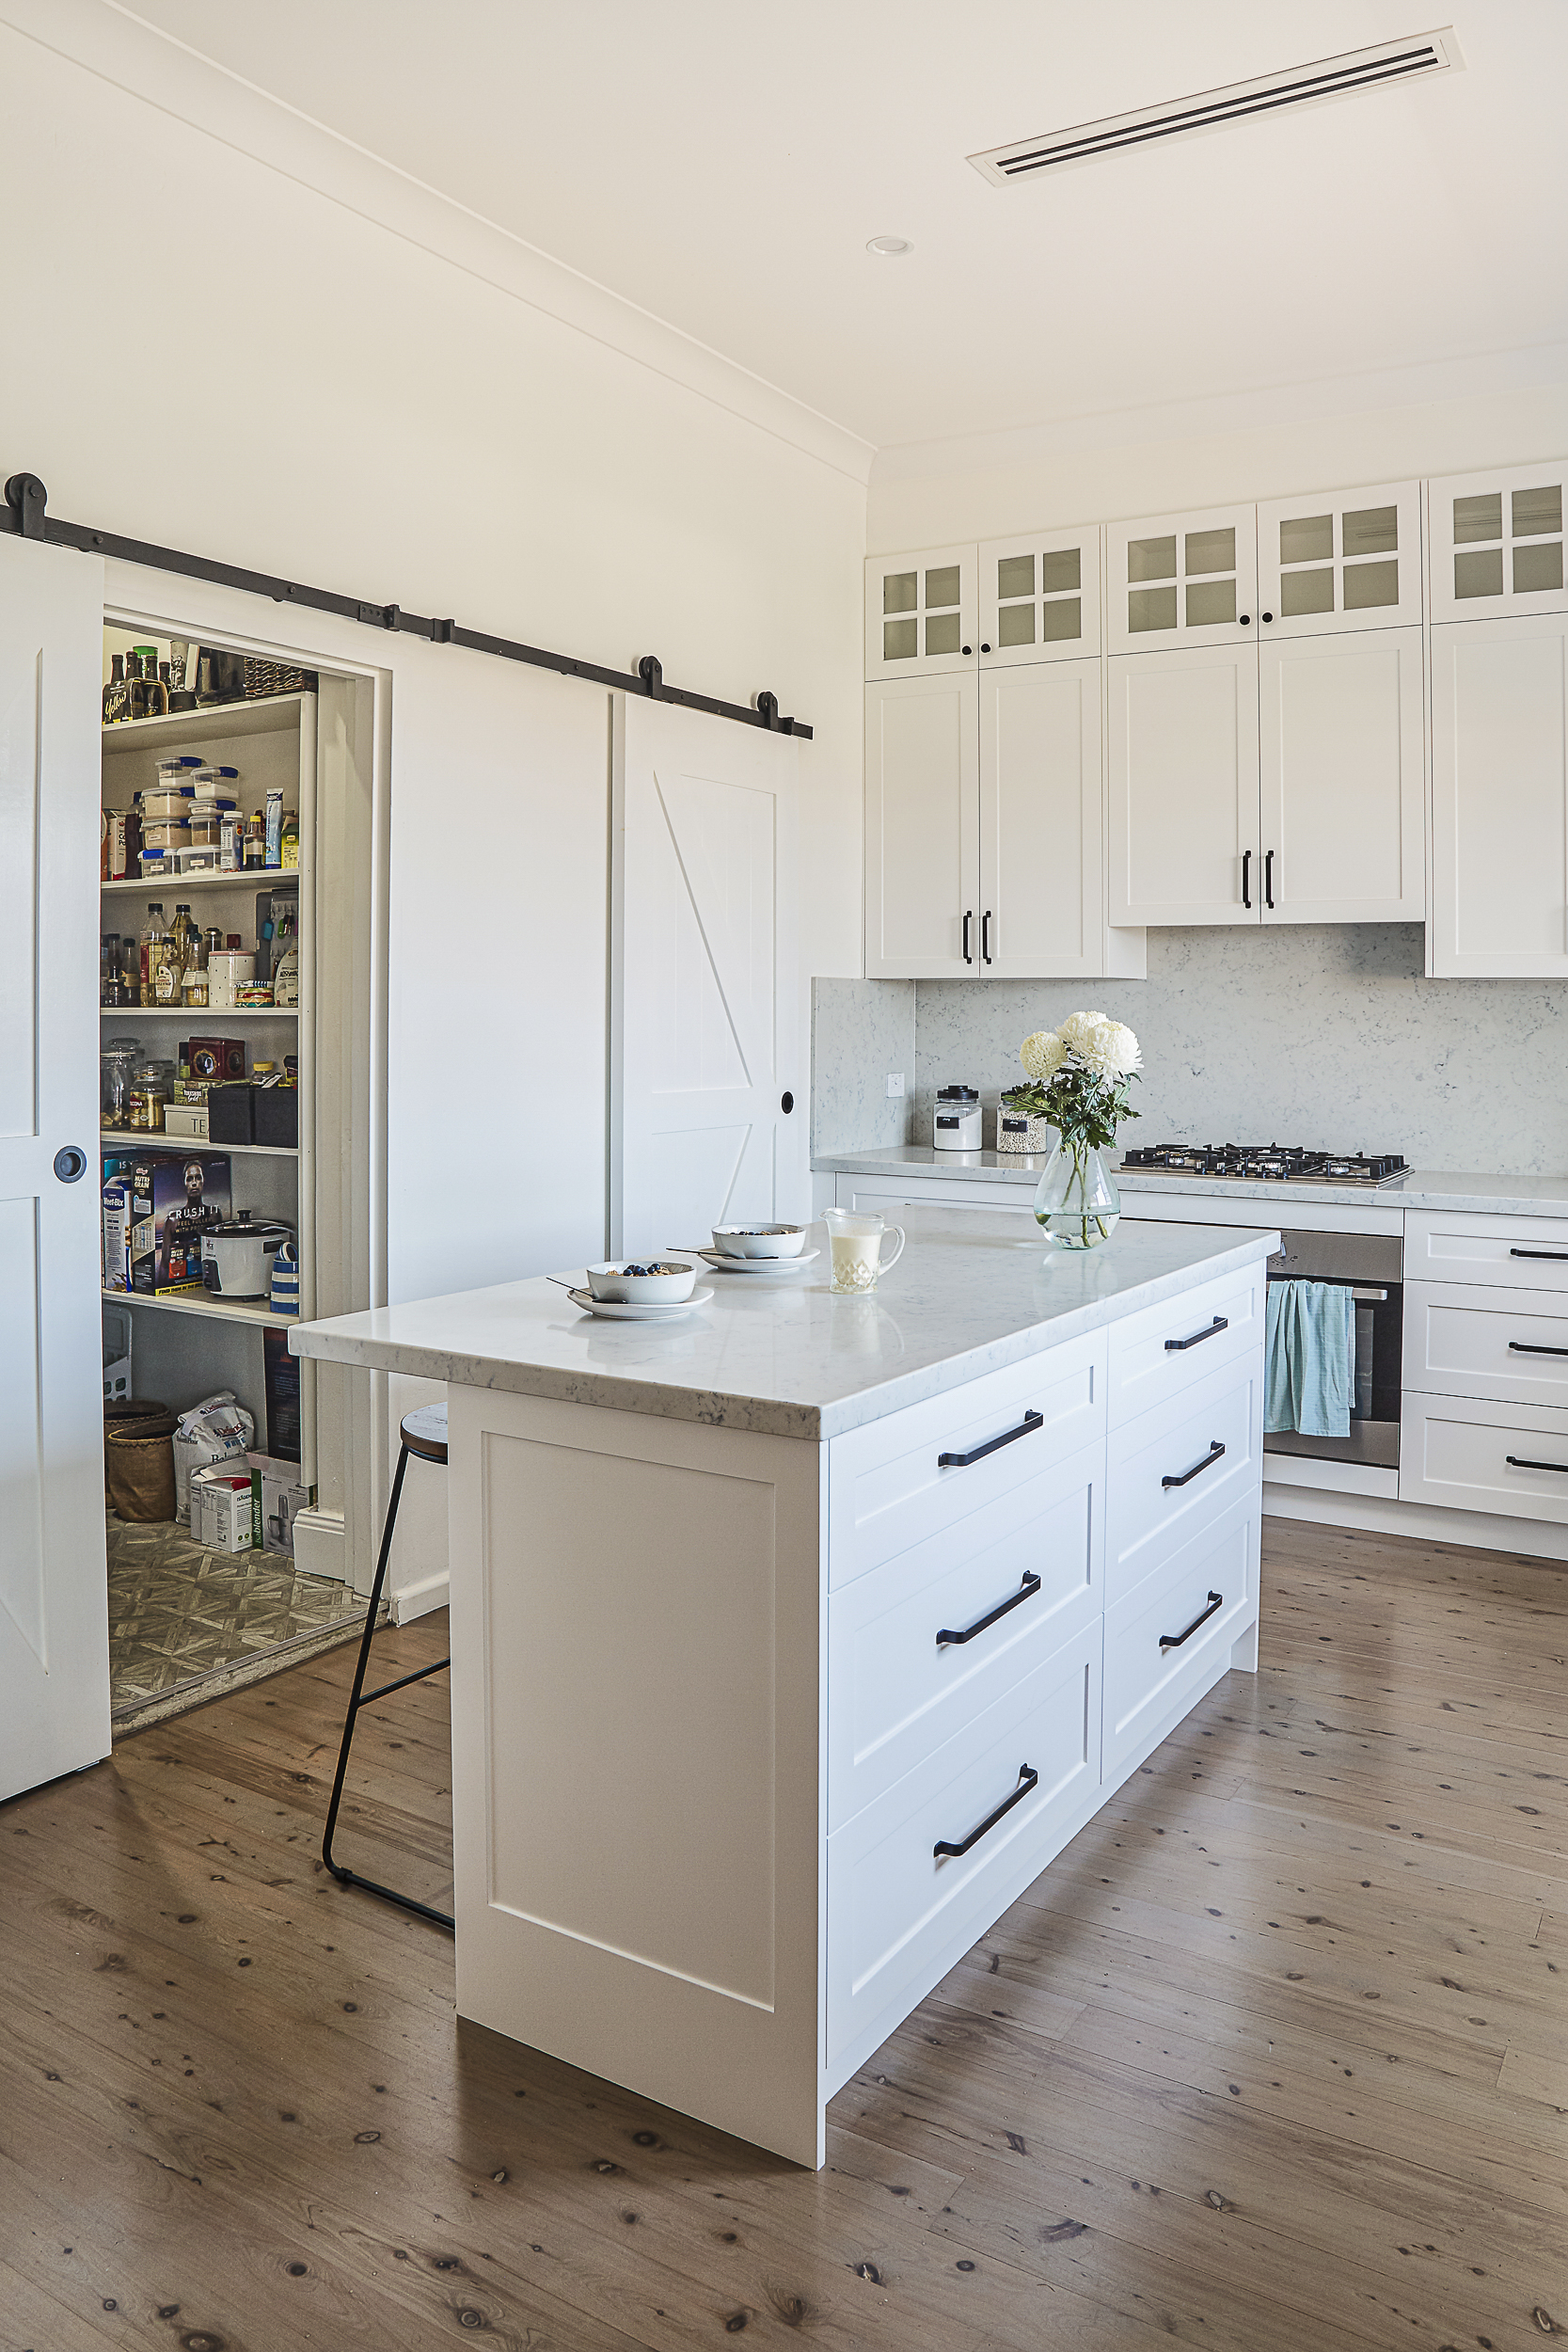 Balnei & Colina kitchen renovation